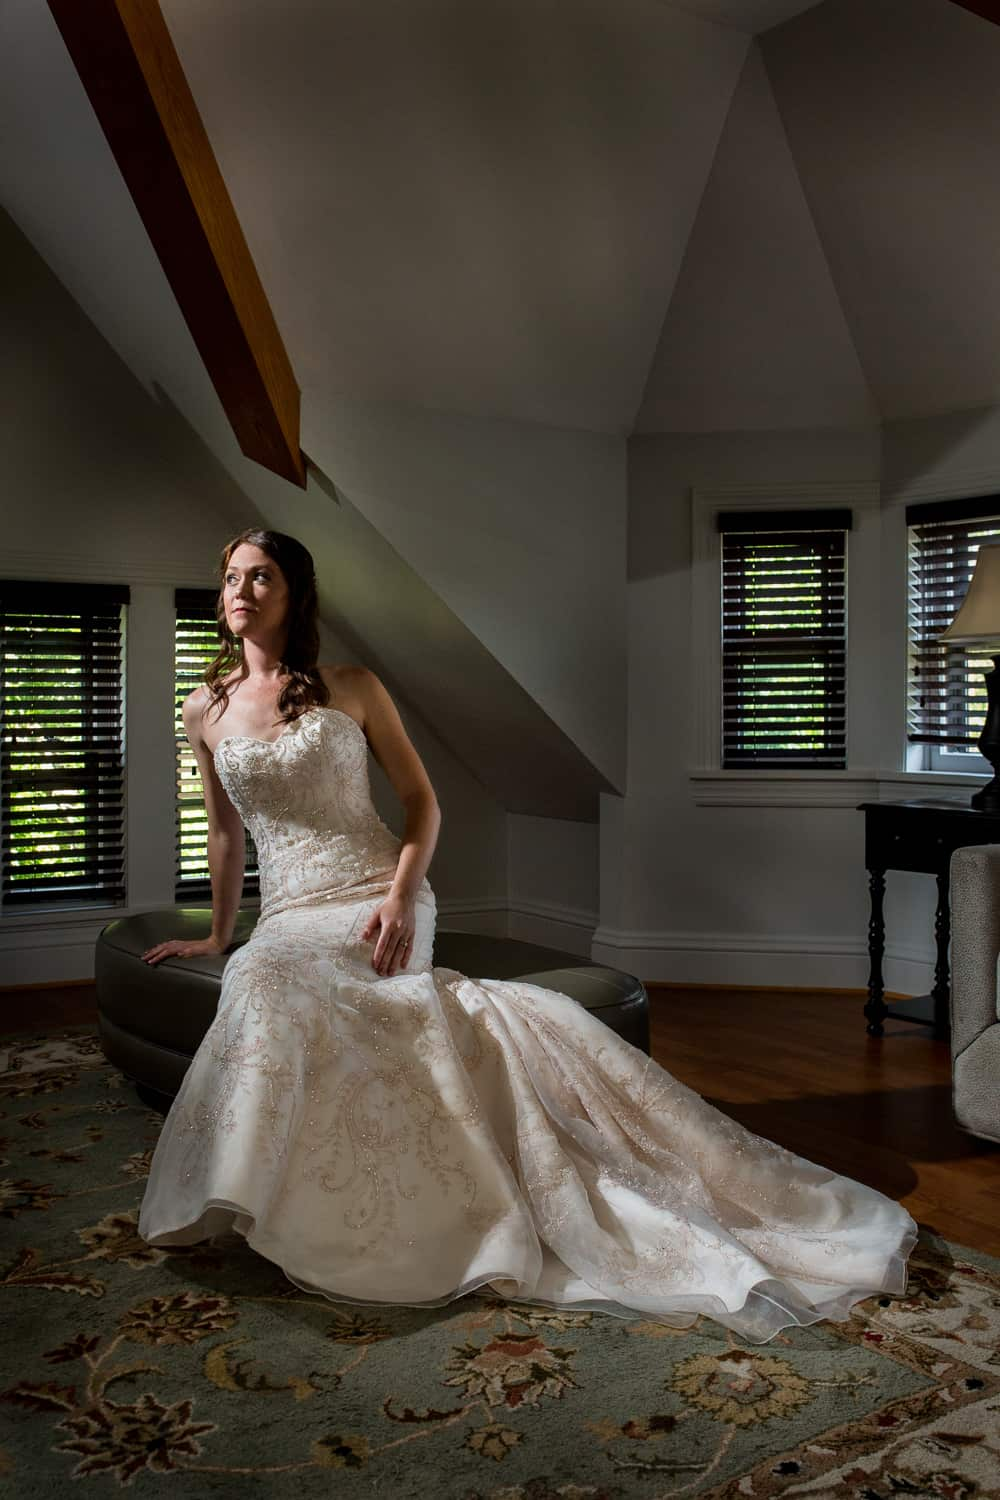 bride sitting on a stool. light shines on her dramatically from above.